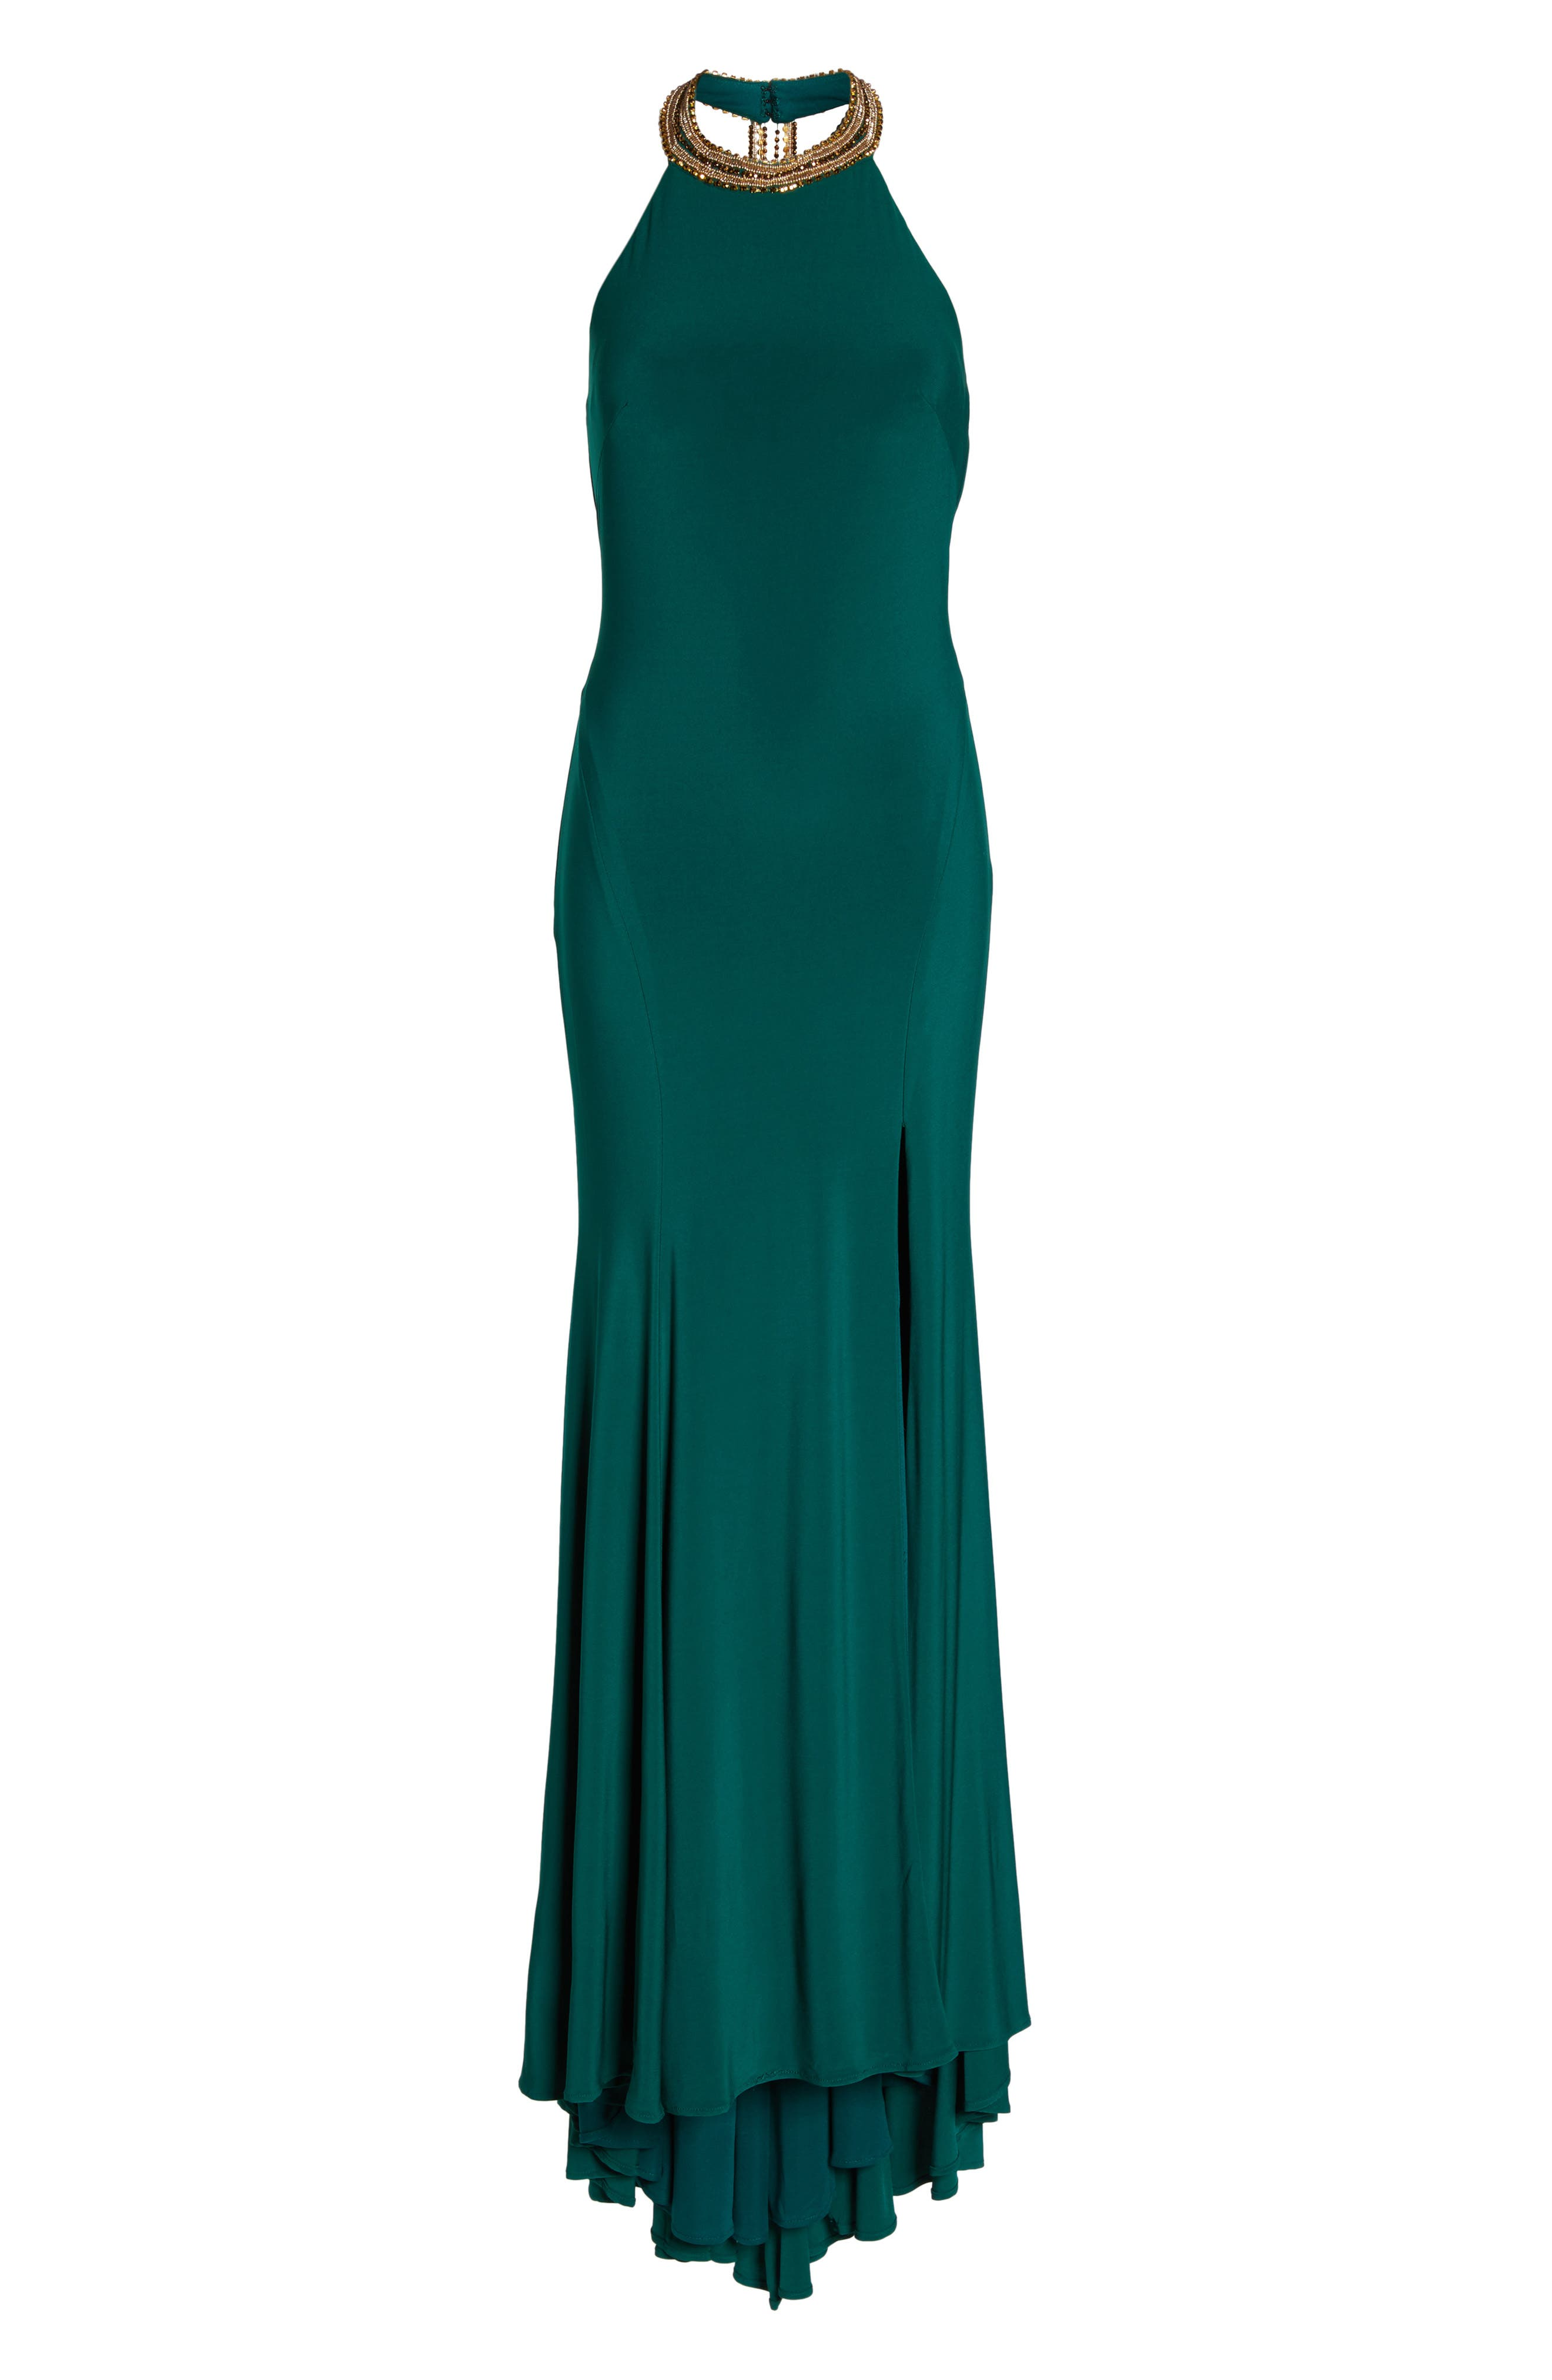 Beaded Halter Neck Gown,                             Alternate thumbnail 6, color,                             EMERALD